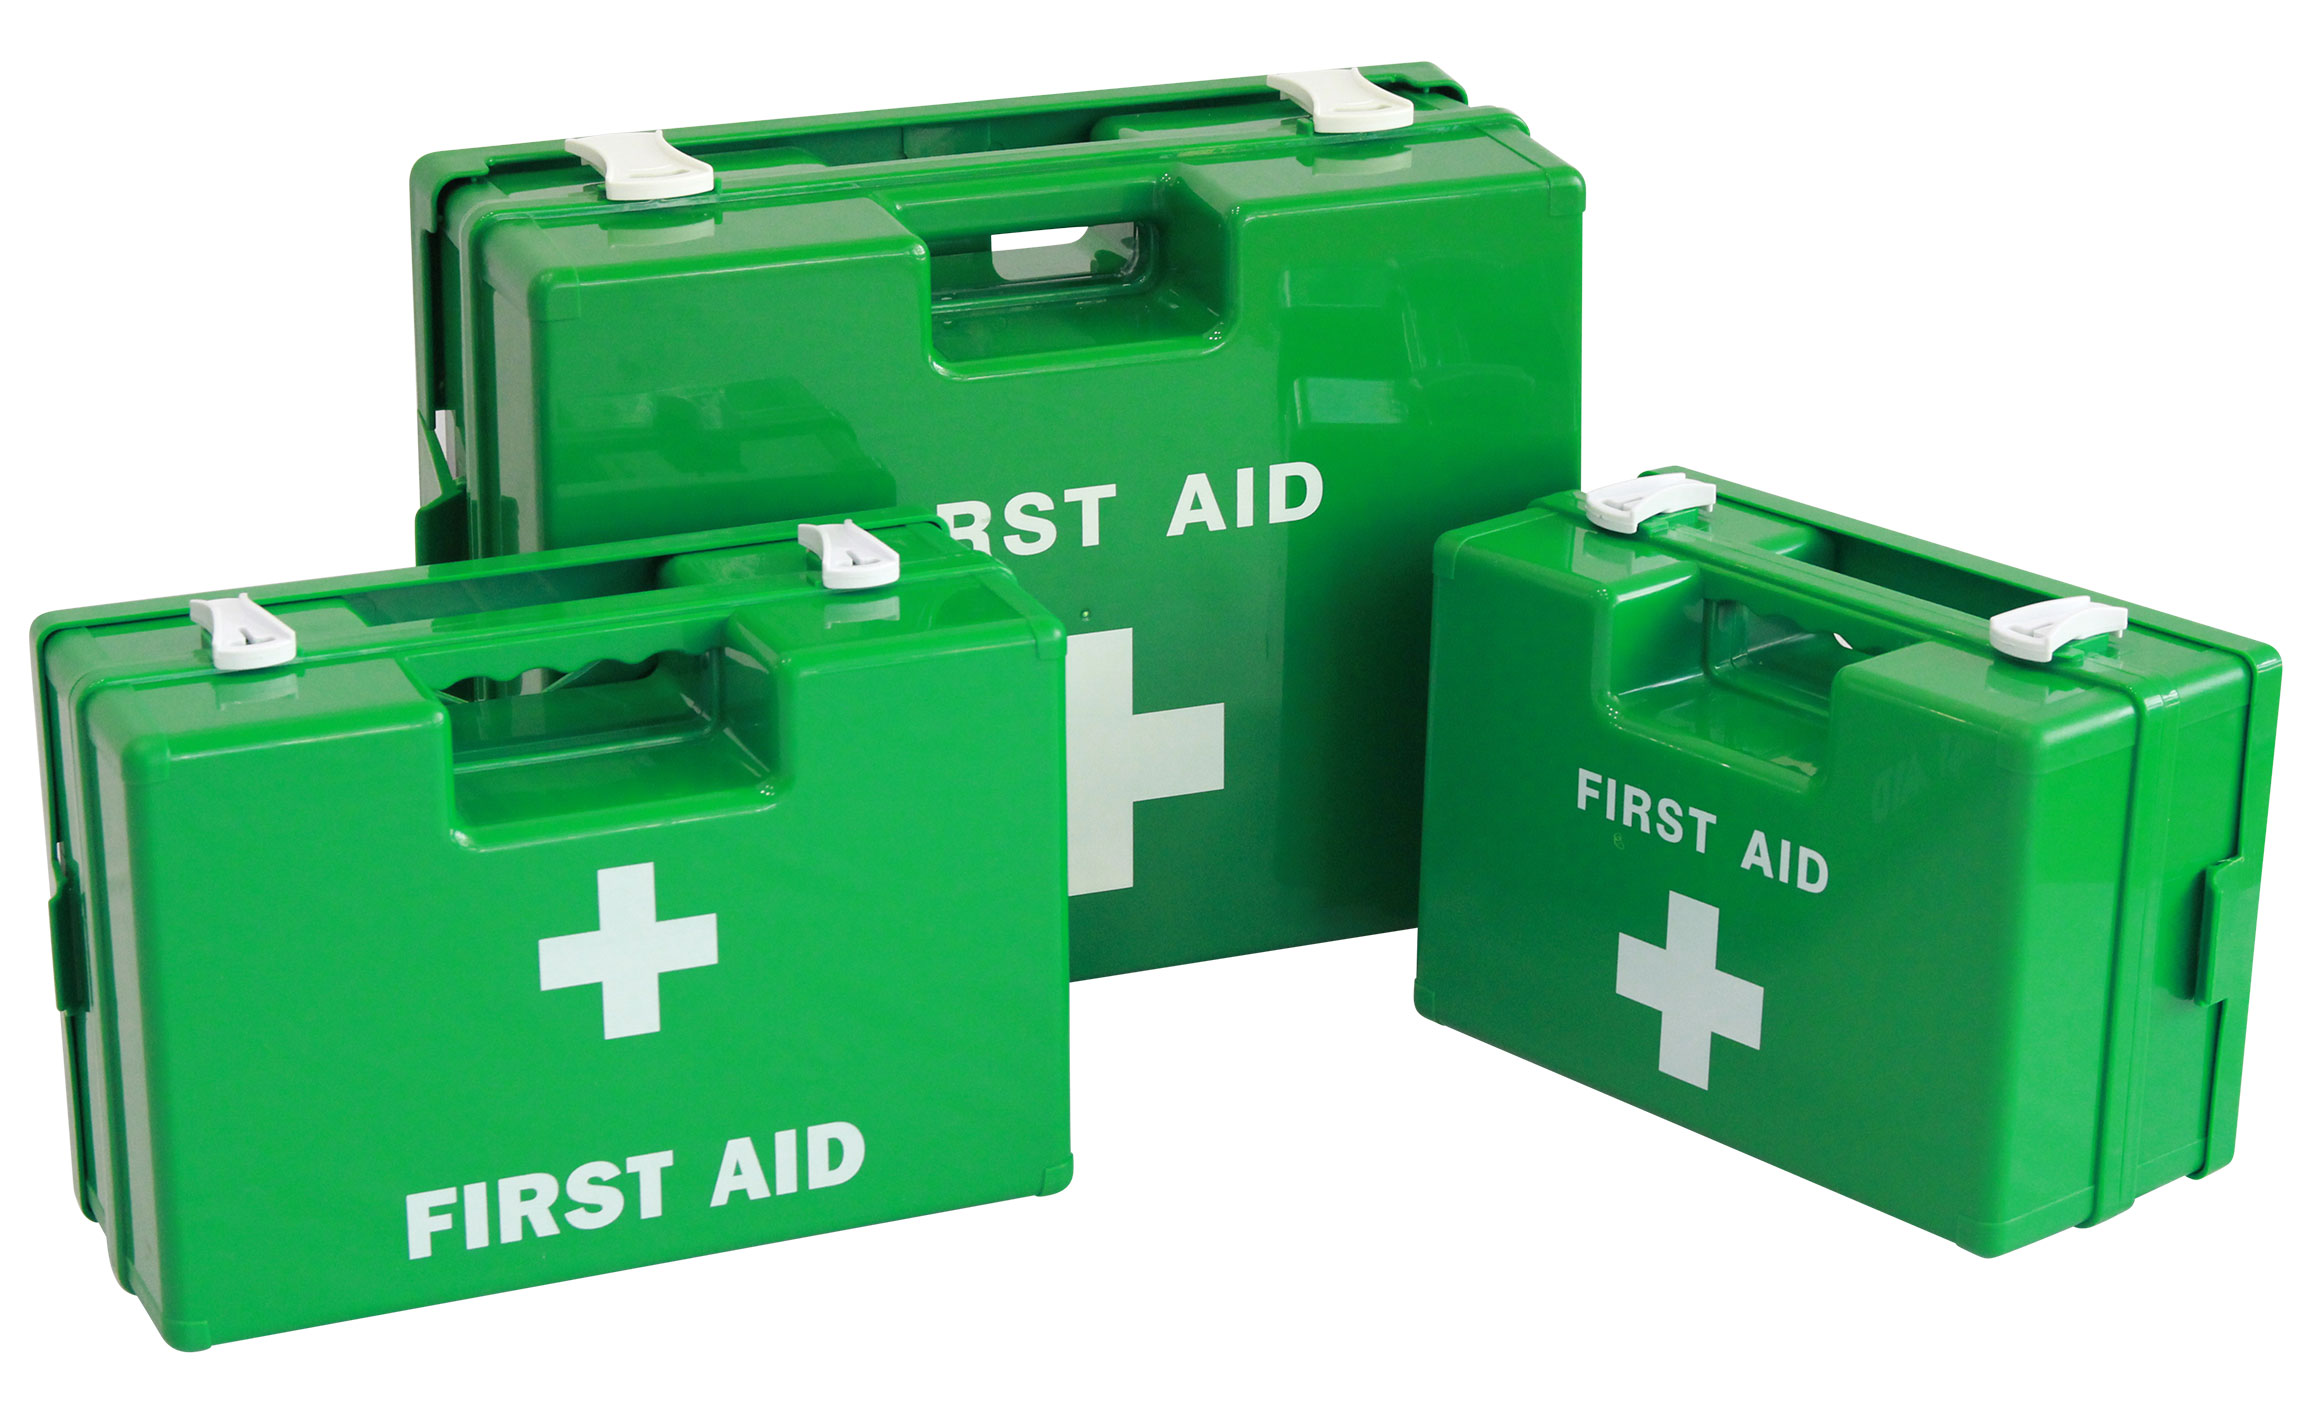 Northrock Safety Green First Aid Box Empty First Aid